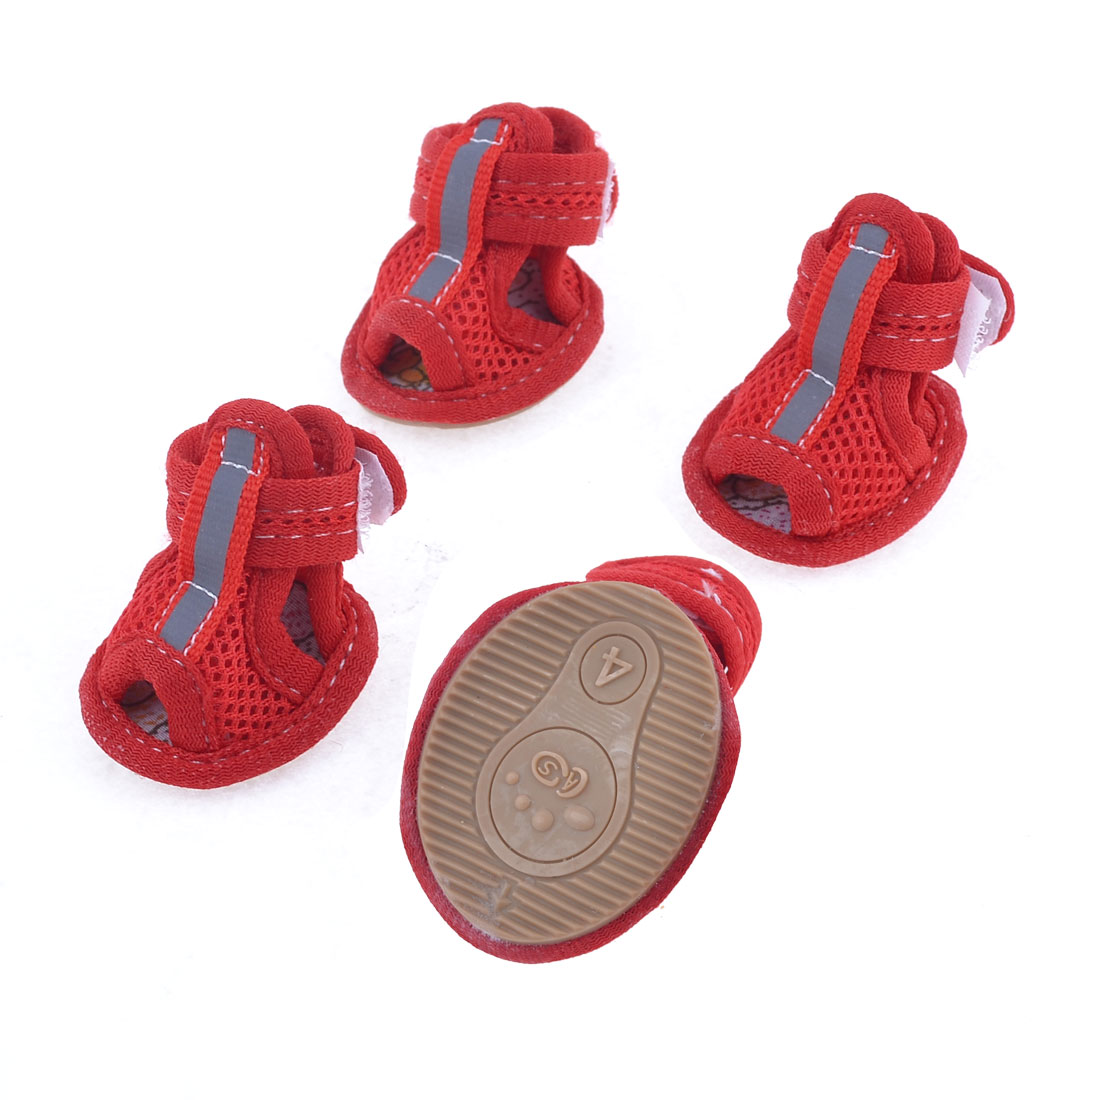 2 Pairs Rubber Sole Red Mesh Sandals Yorkie Chihuaha Dog Shoes Size M